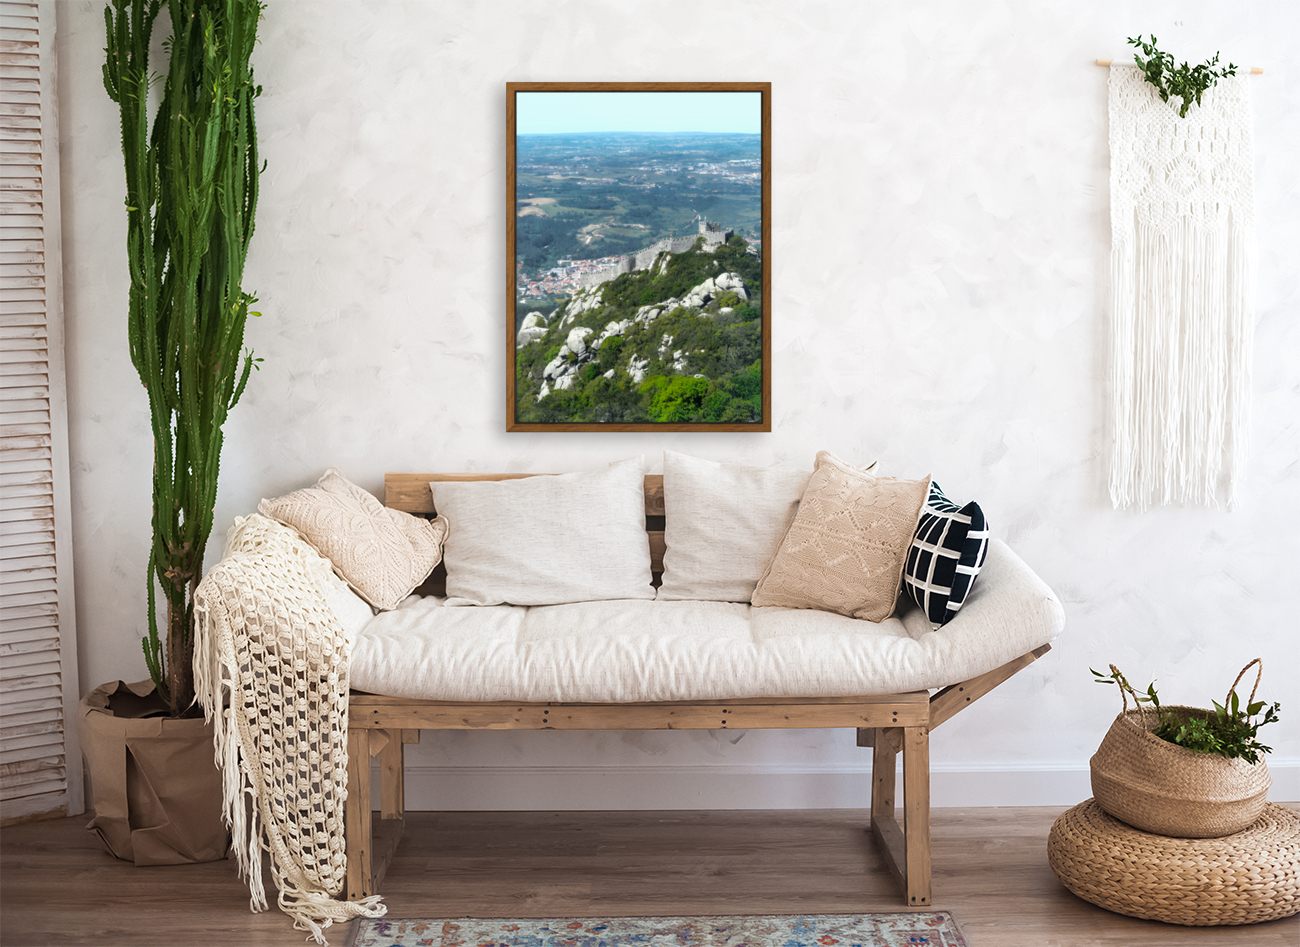 Castelo dos Mouros - Castle of the Moors - Sintra Portugal  Art